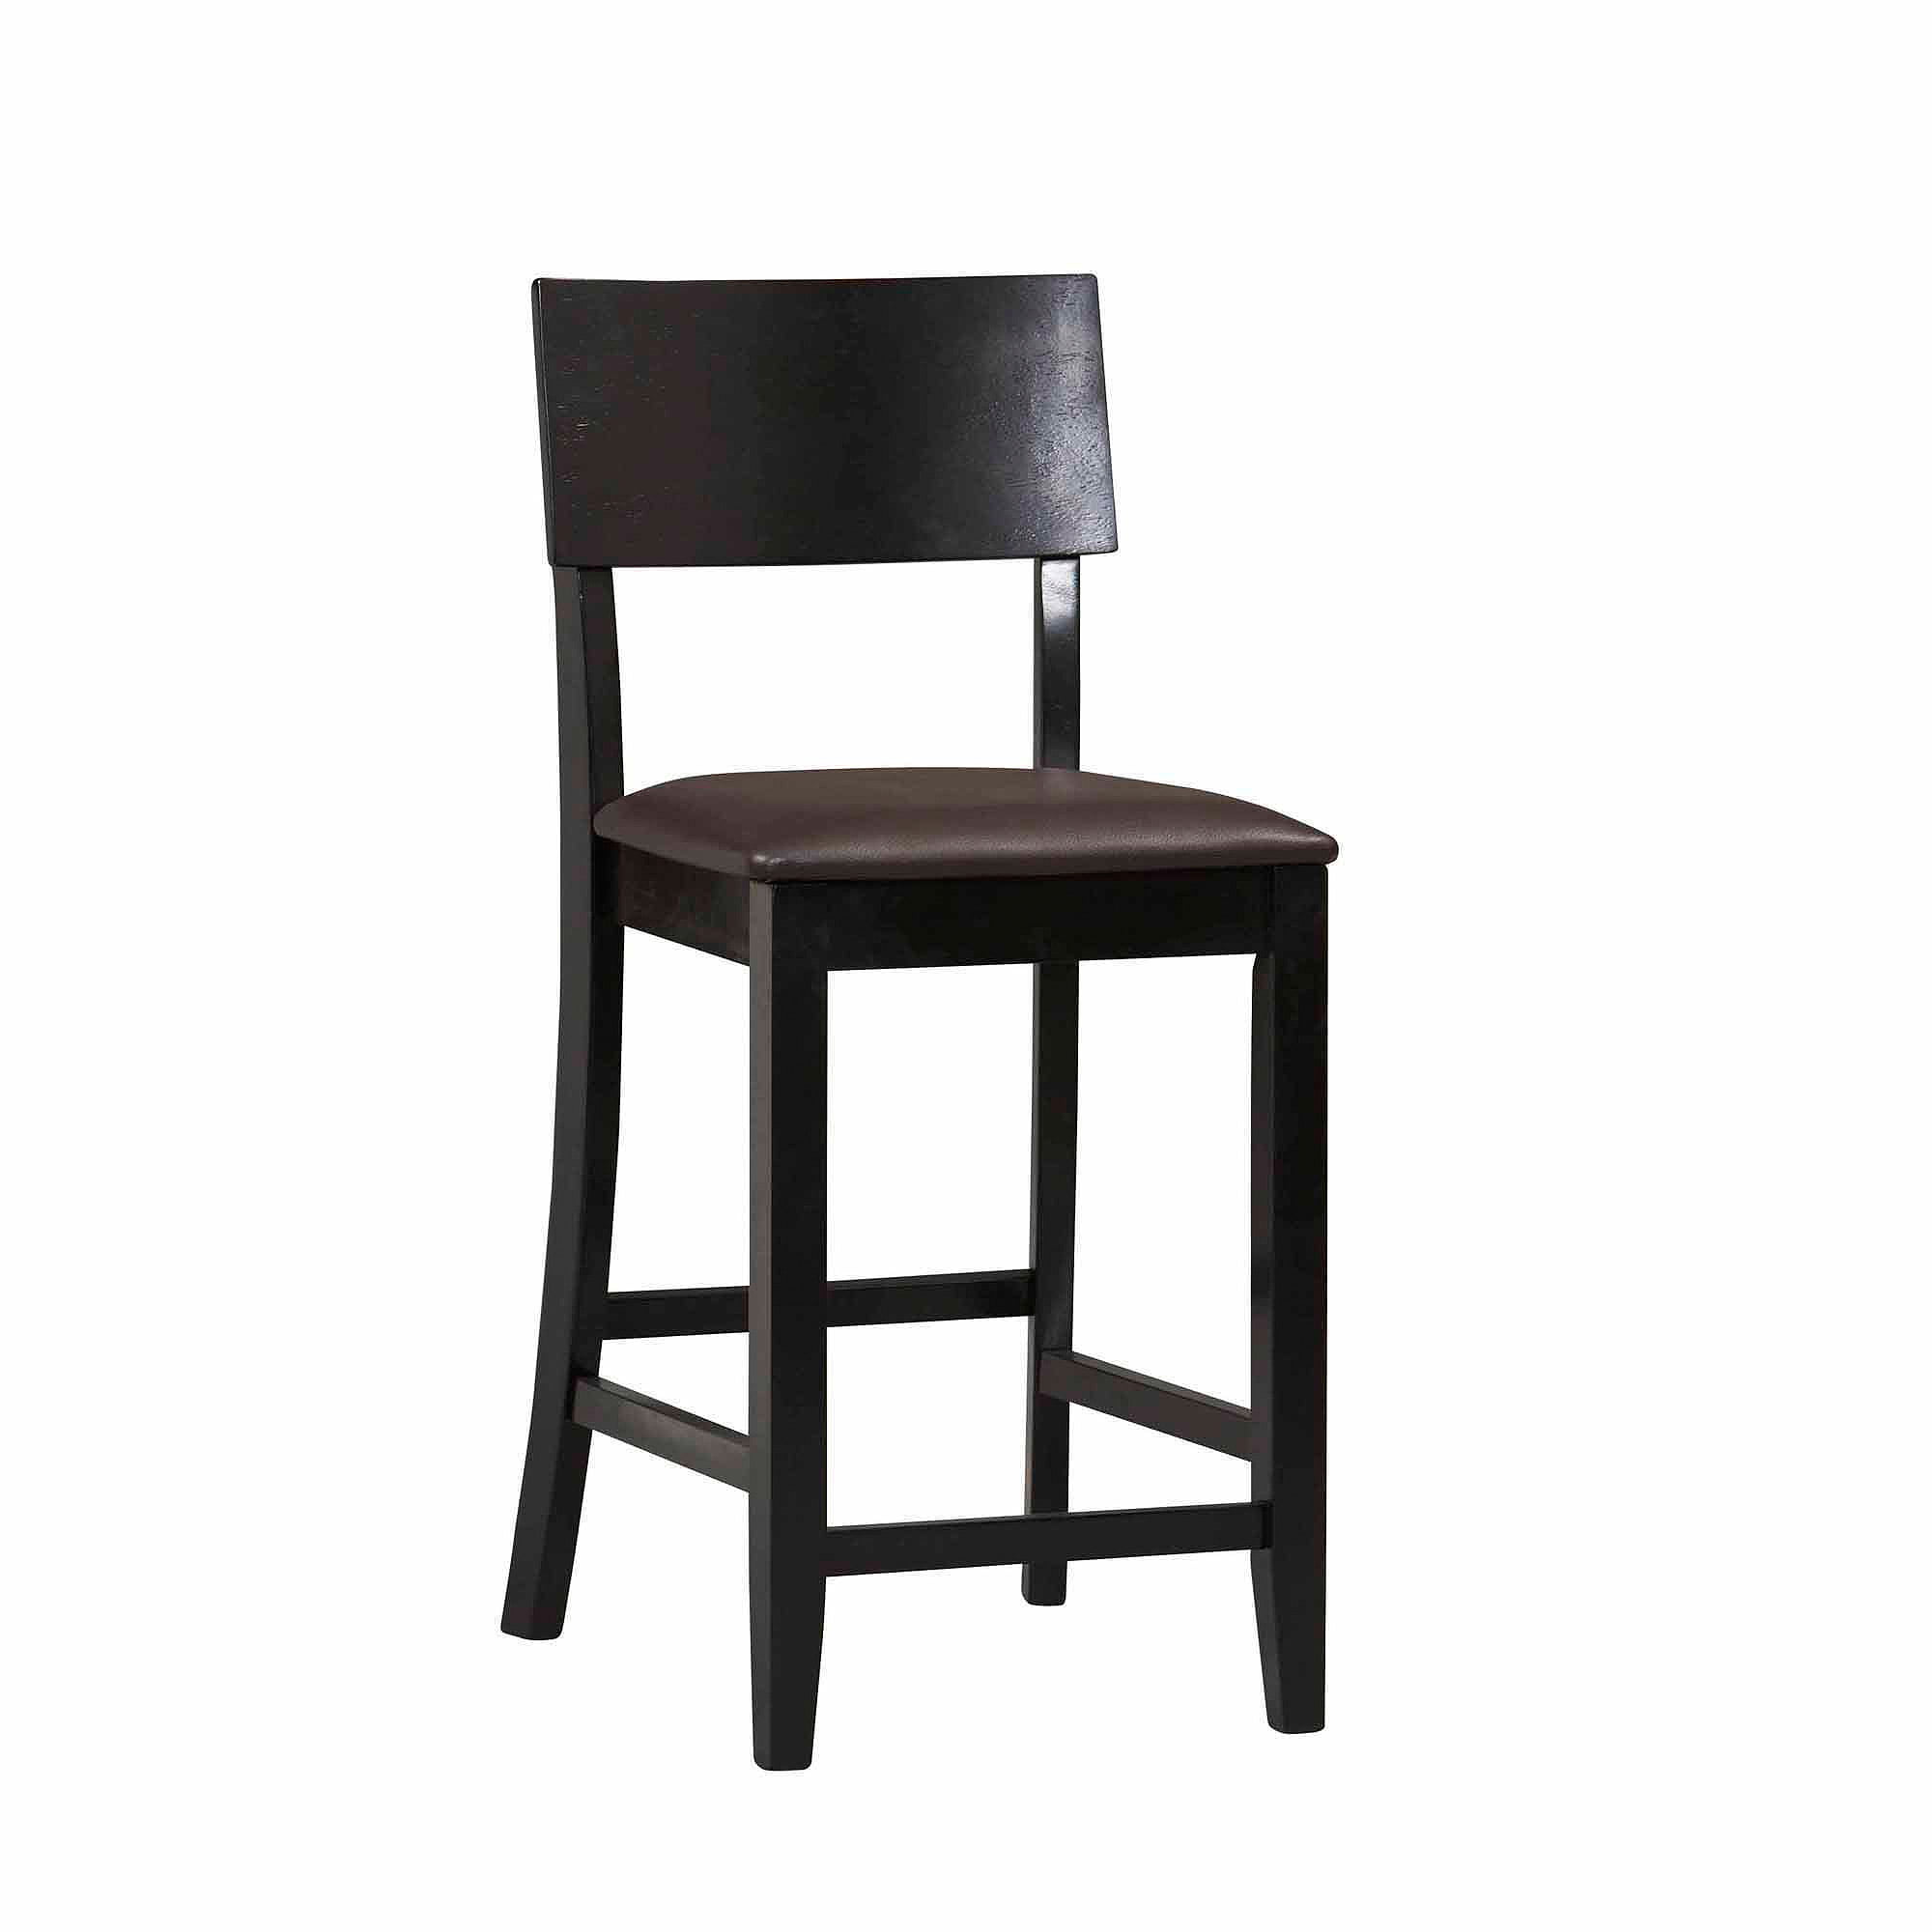 Linon Torino Contemporary Counter Stool Brown 24 Inch Seat Height